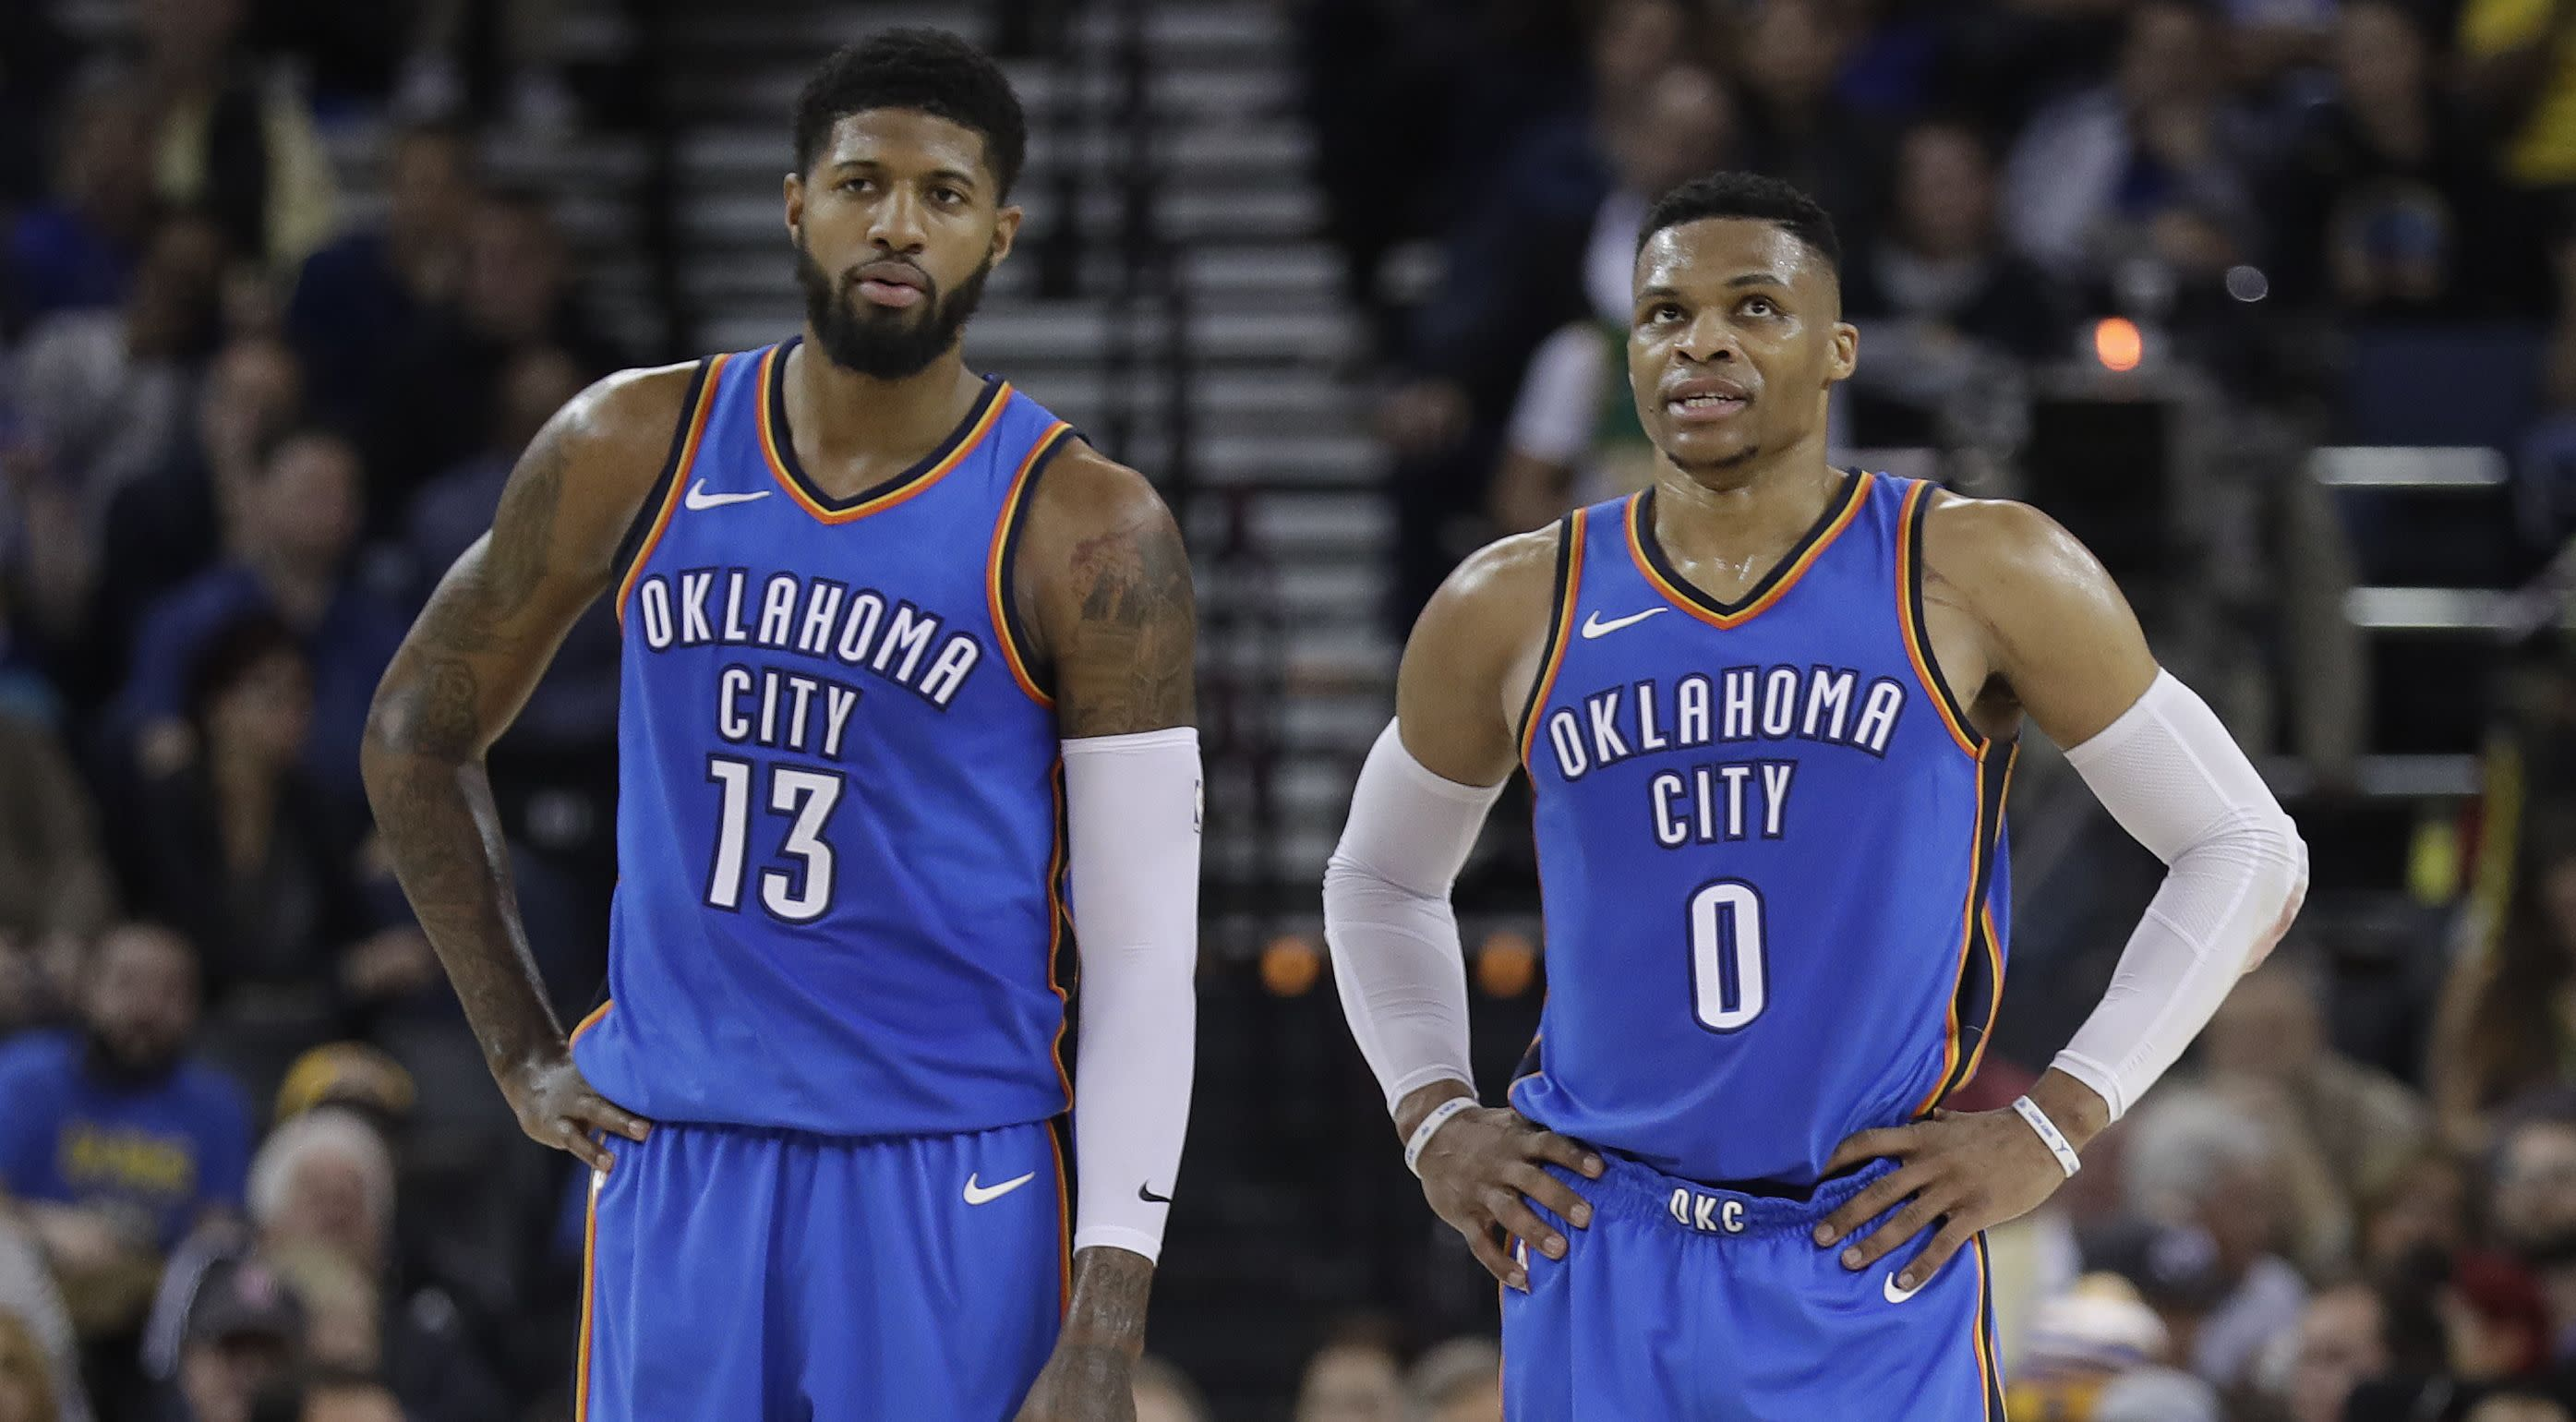 paul george stays in oklahoma city spurning lakers and agreeing to